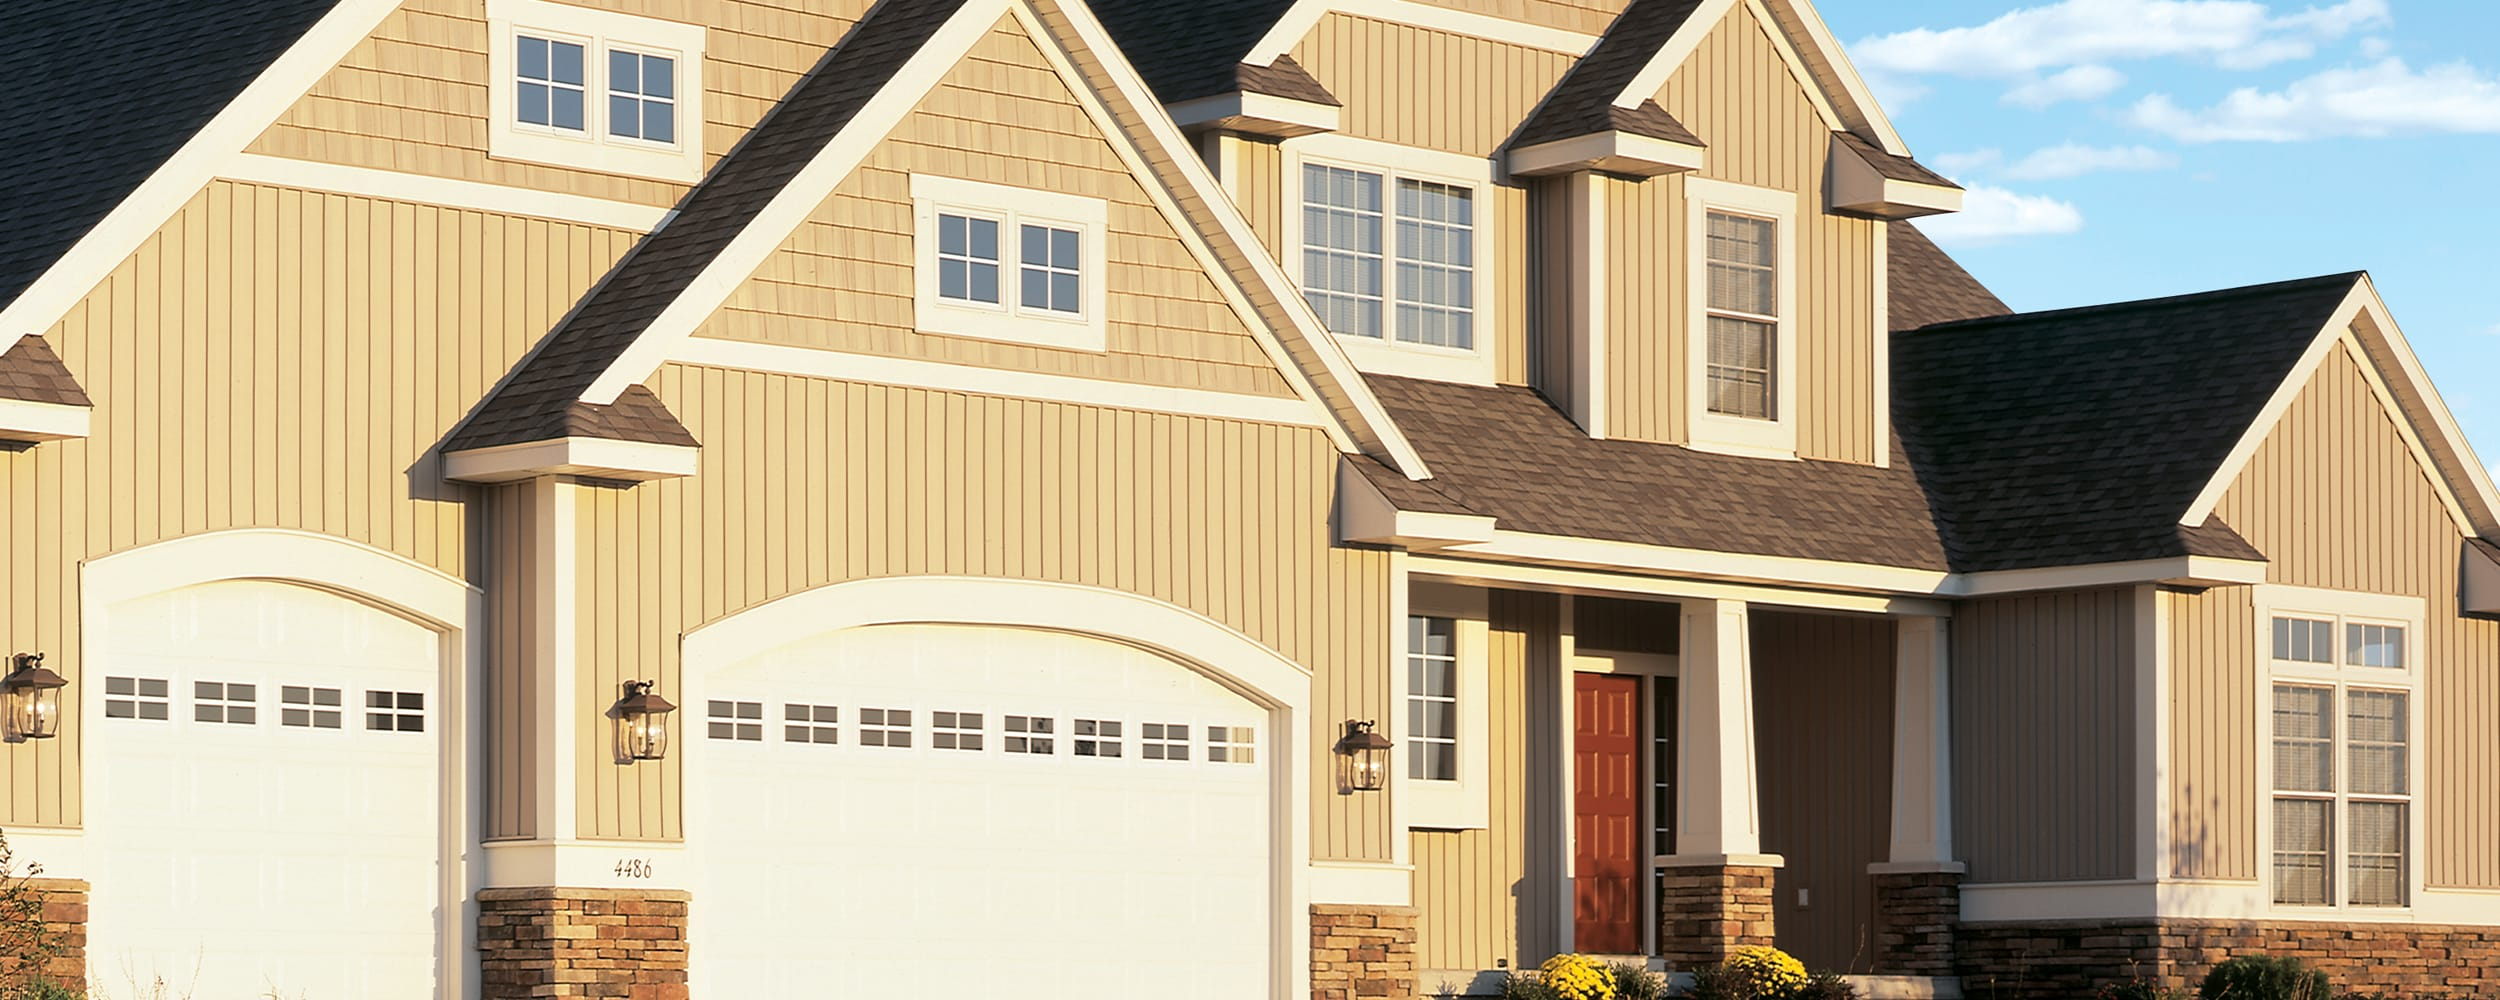 Vinyl Siding How Does Vinyl Siding Compare With Brick For